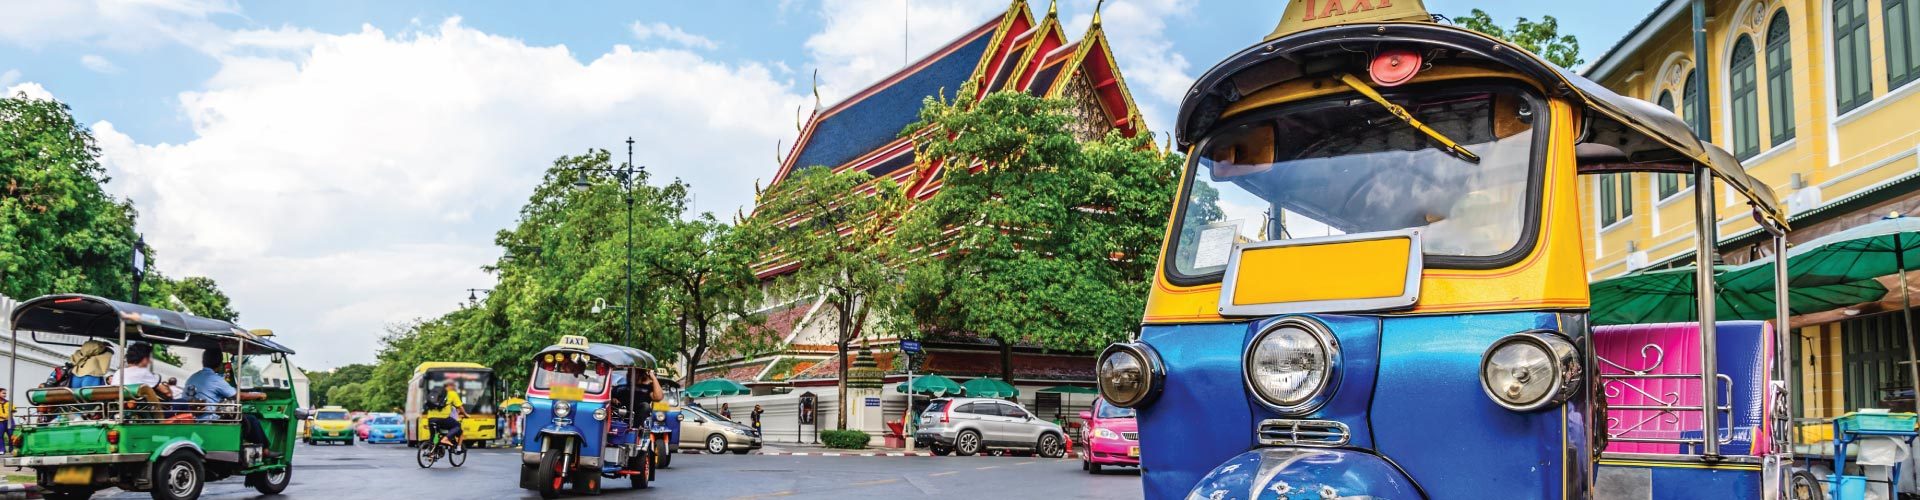 Tour - 3d2n Bangkok Free & Easy* - That01alp03kh - R7